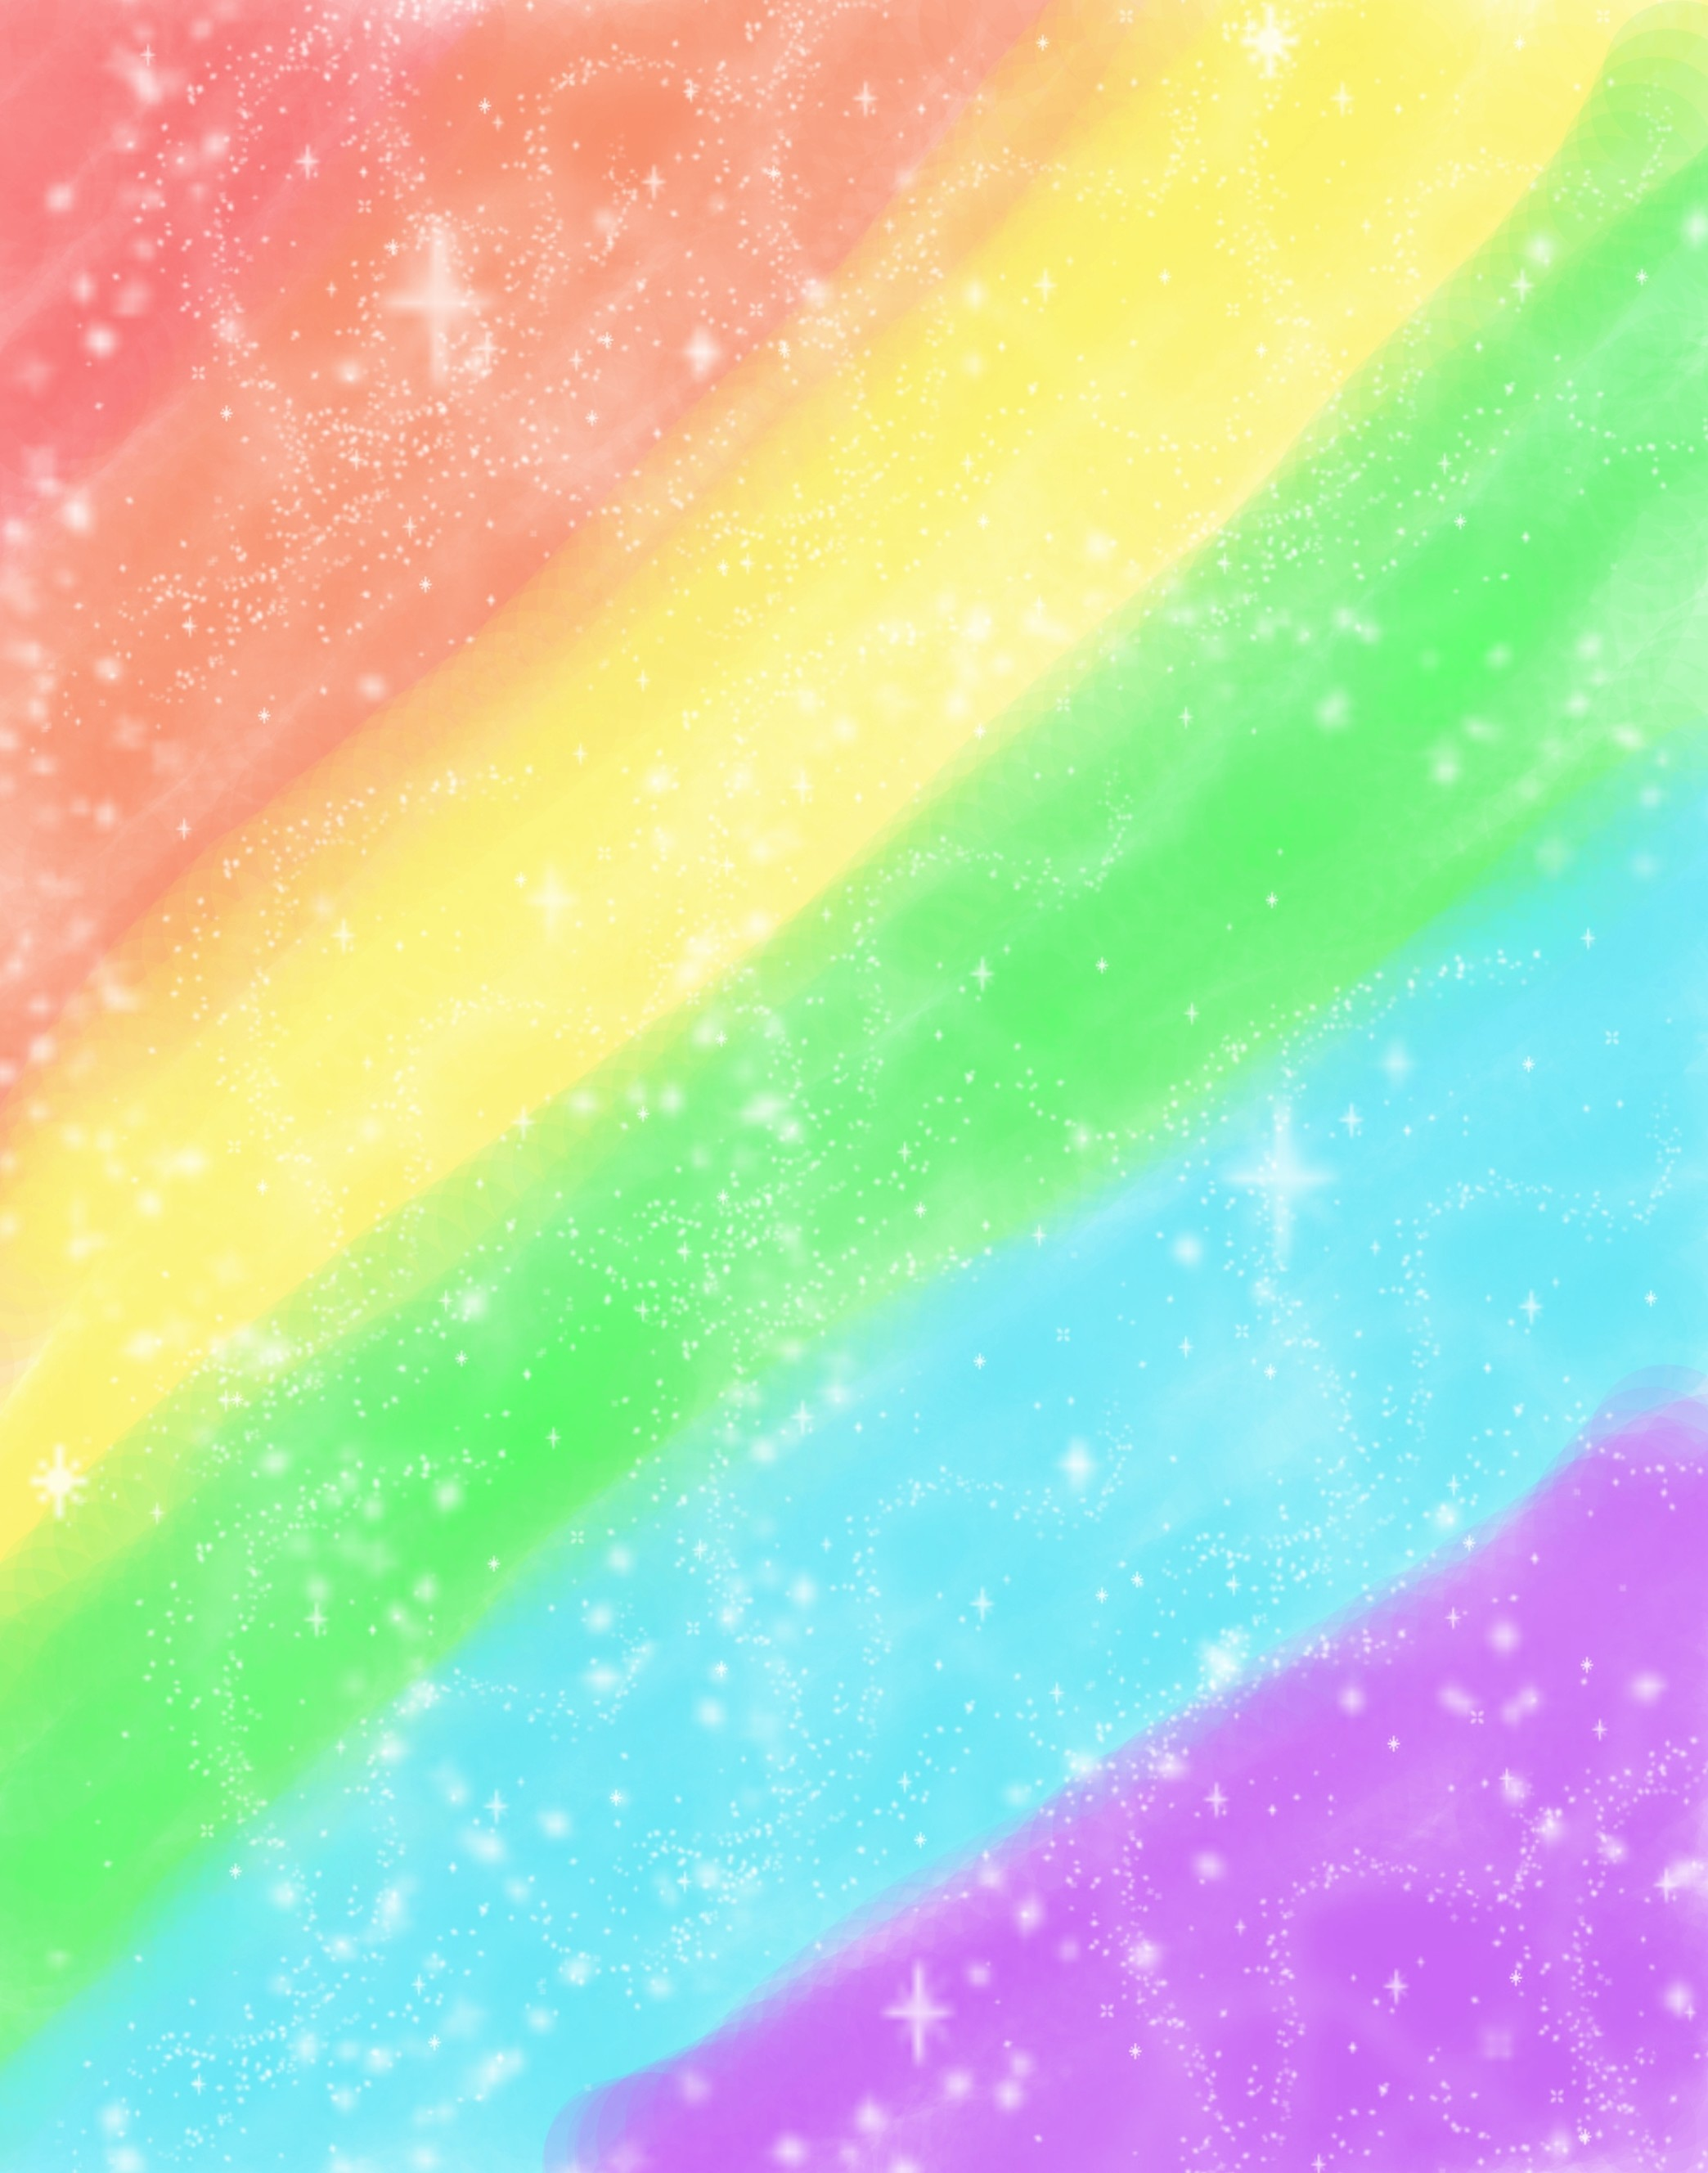 Rainbow stars backgrounds 2088x2656 cute rainbow iphone wallpaper w a l l p a p e r s pinterest voltagebd Image collections